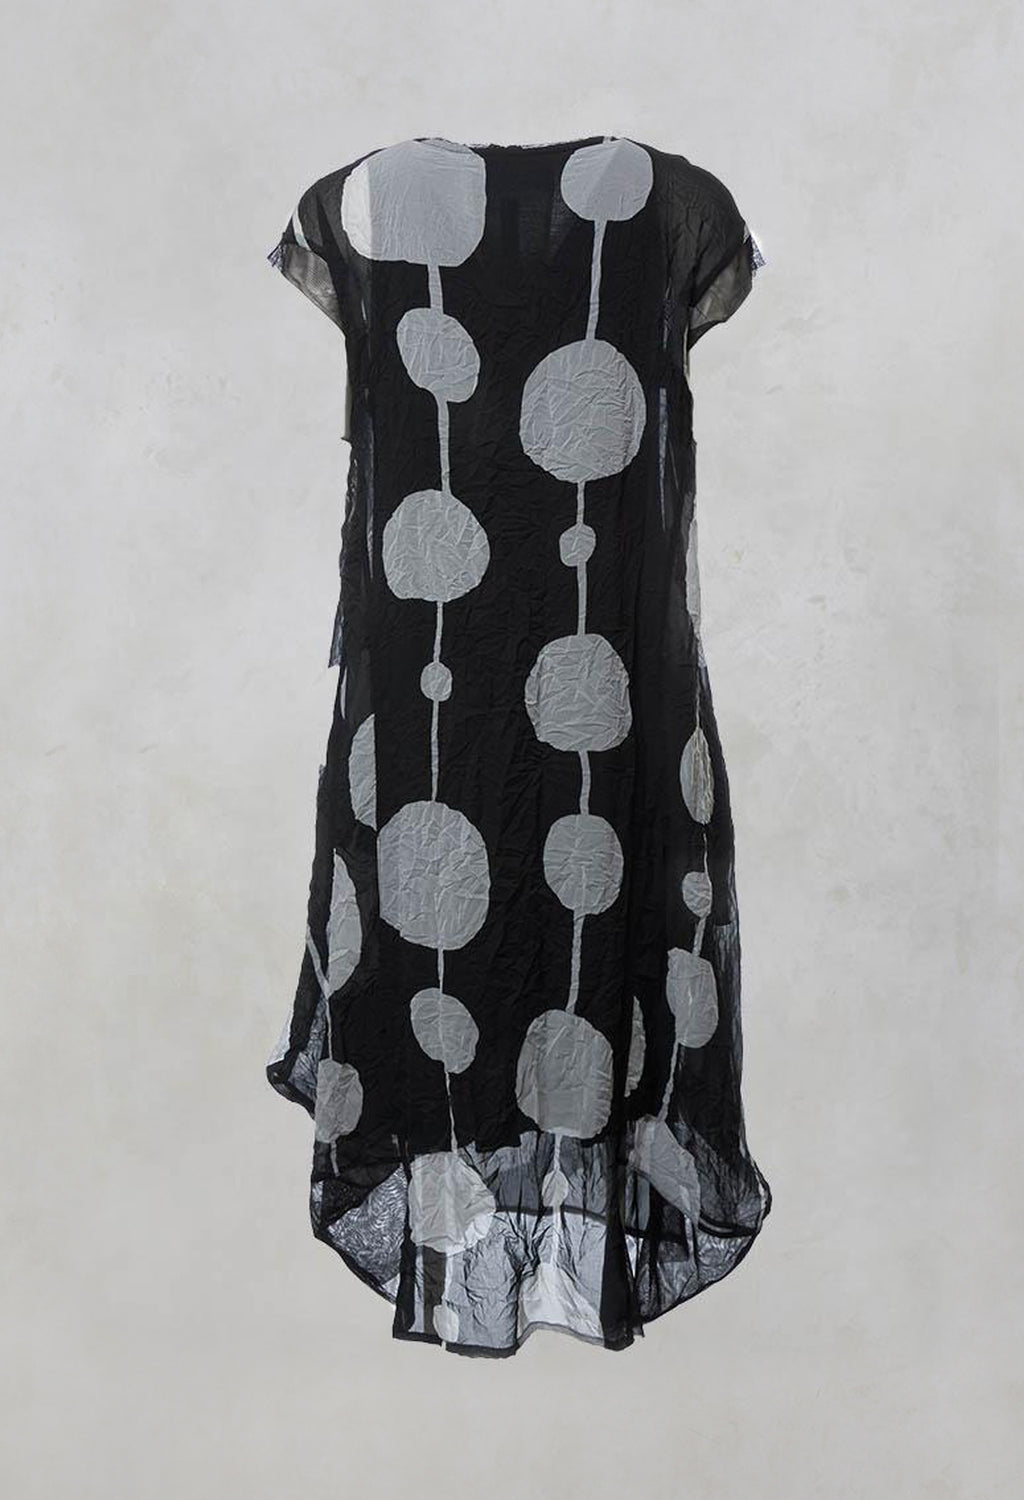 Sheer Dress with Slip and Mesh Detailing in Black/Grey